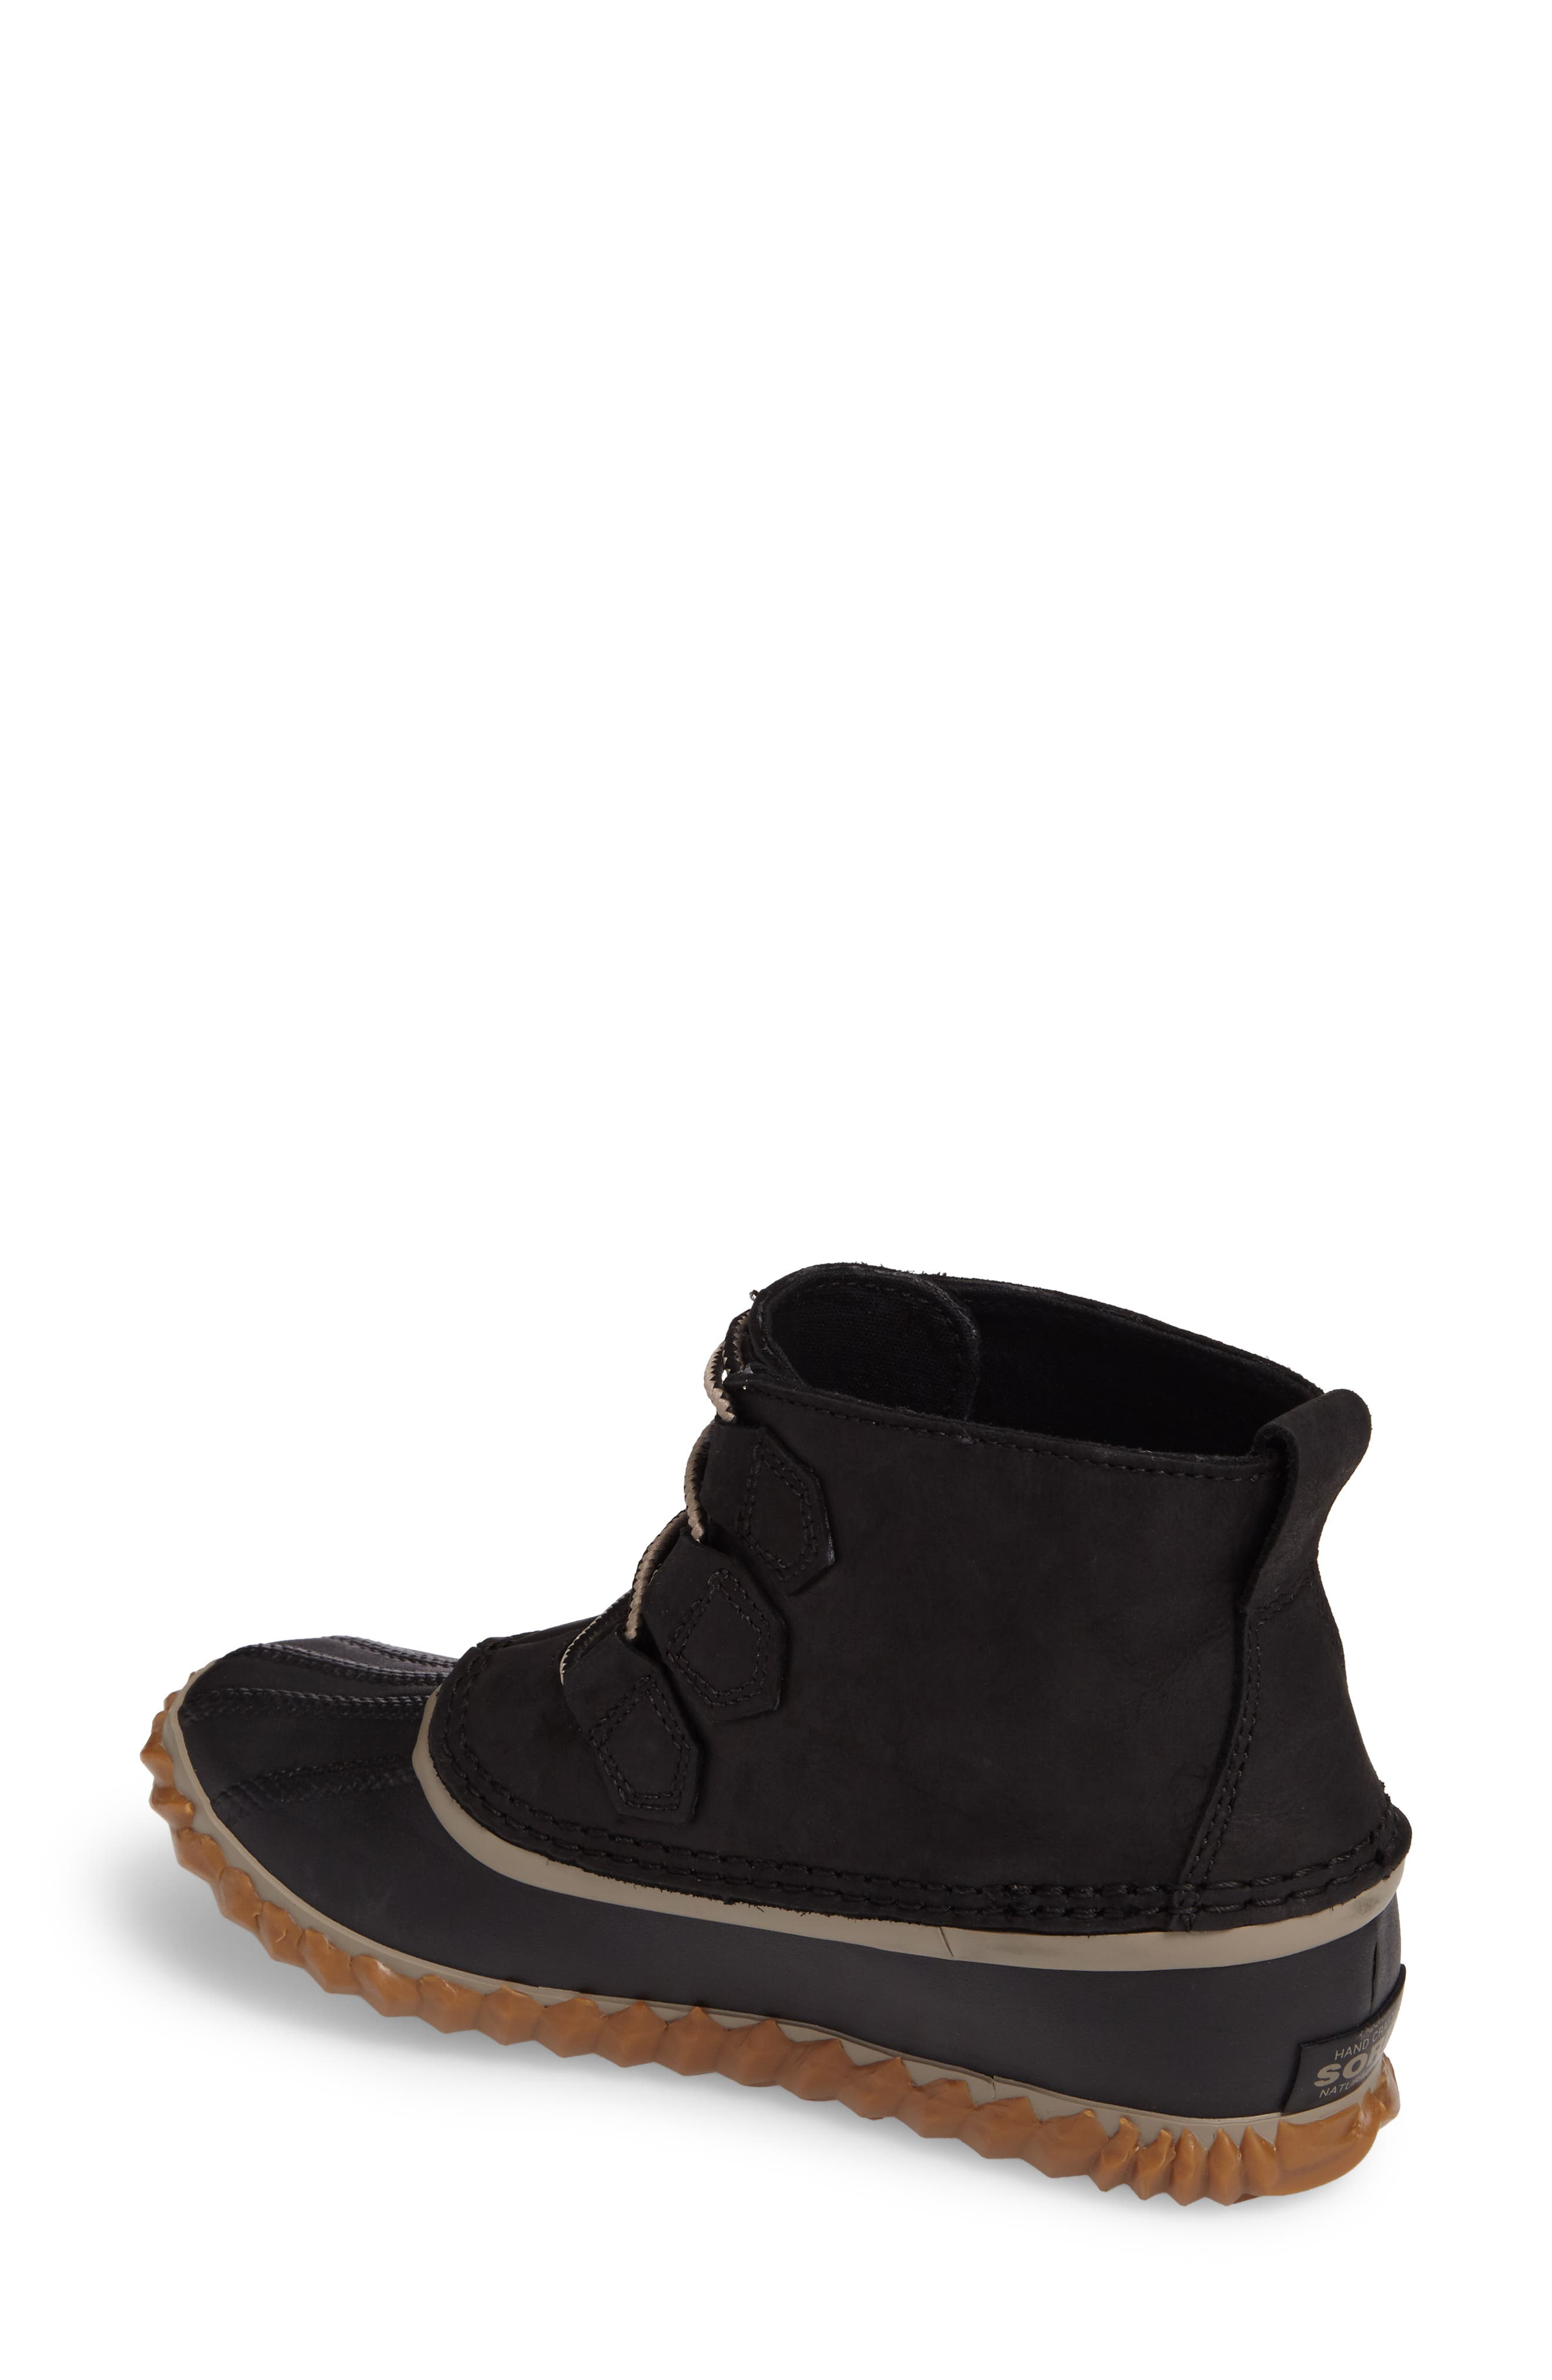 'Out N About' Leather Boot,                             Alternate thumbnail 16, color,